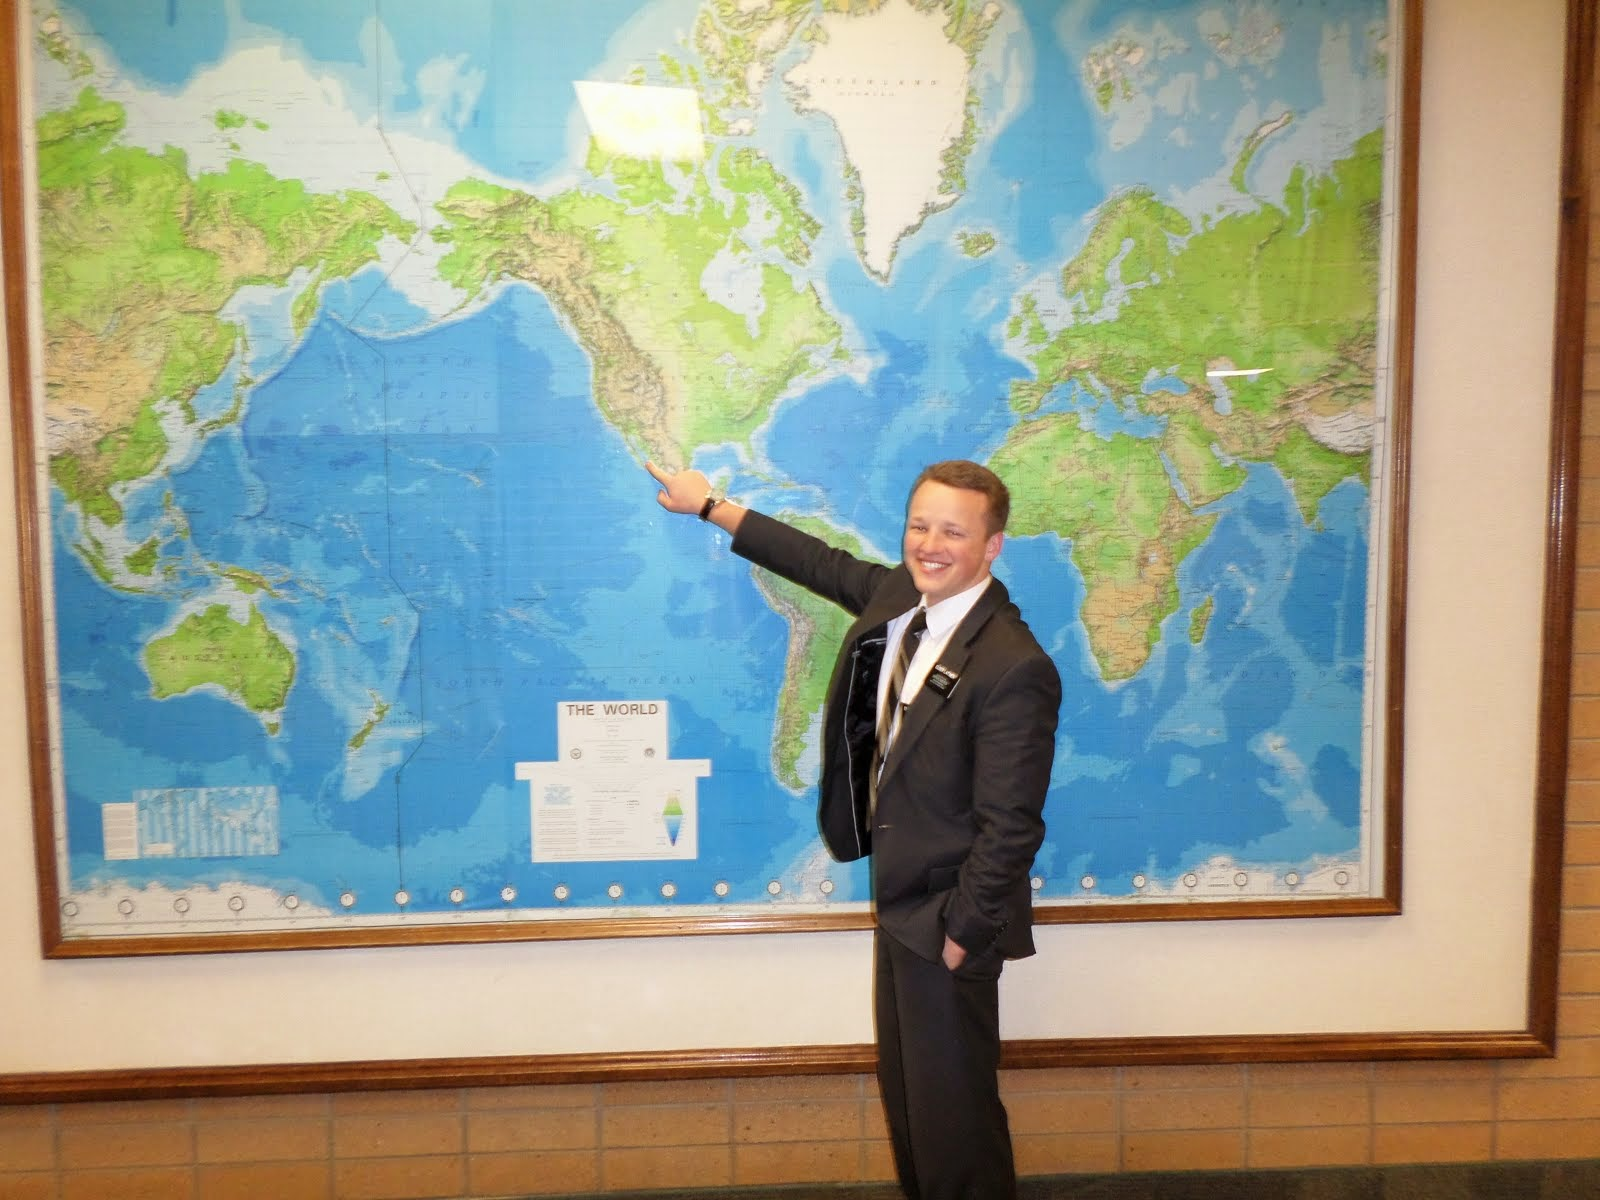 Elder Jake Latimer